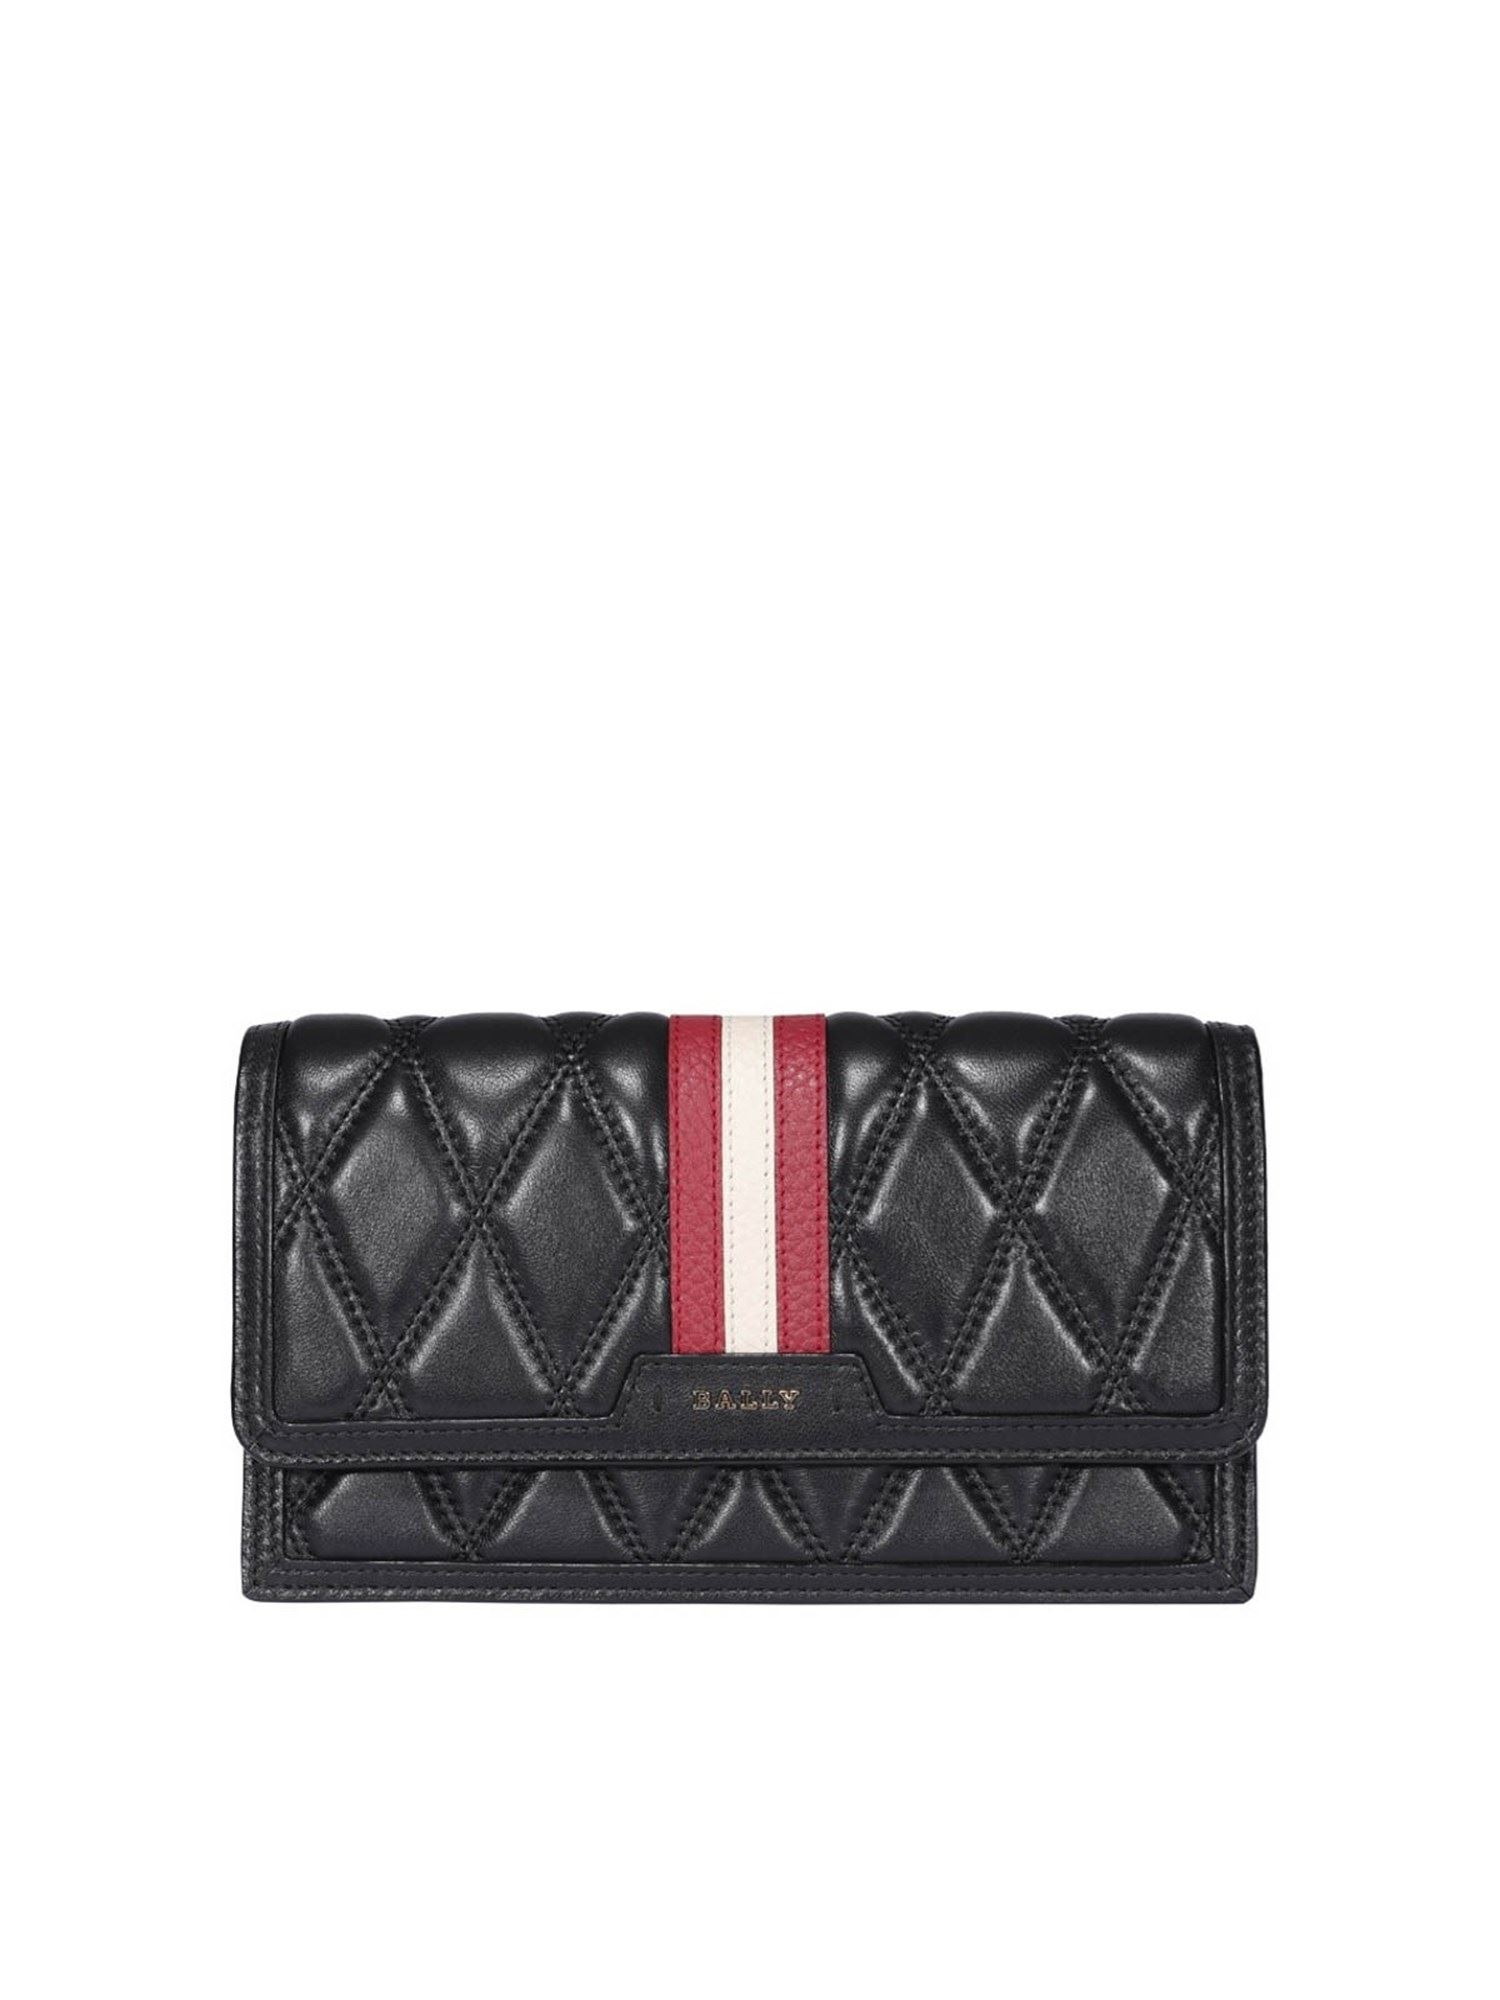 Bally REMOVABLE SHOULDER STRAP LEATHER CLUTCH